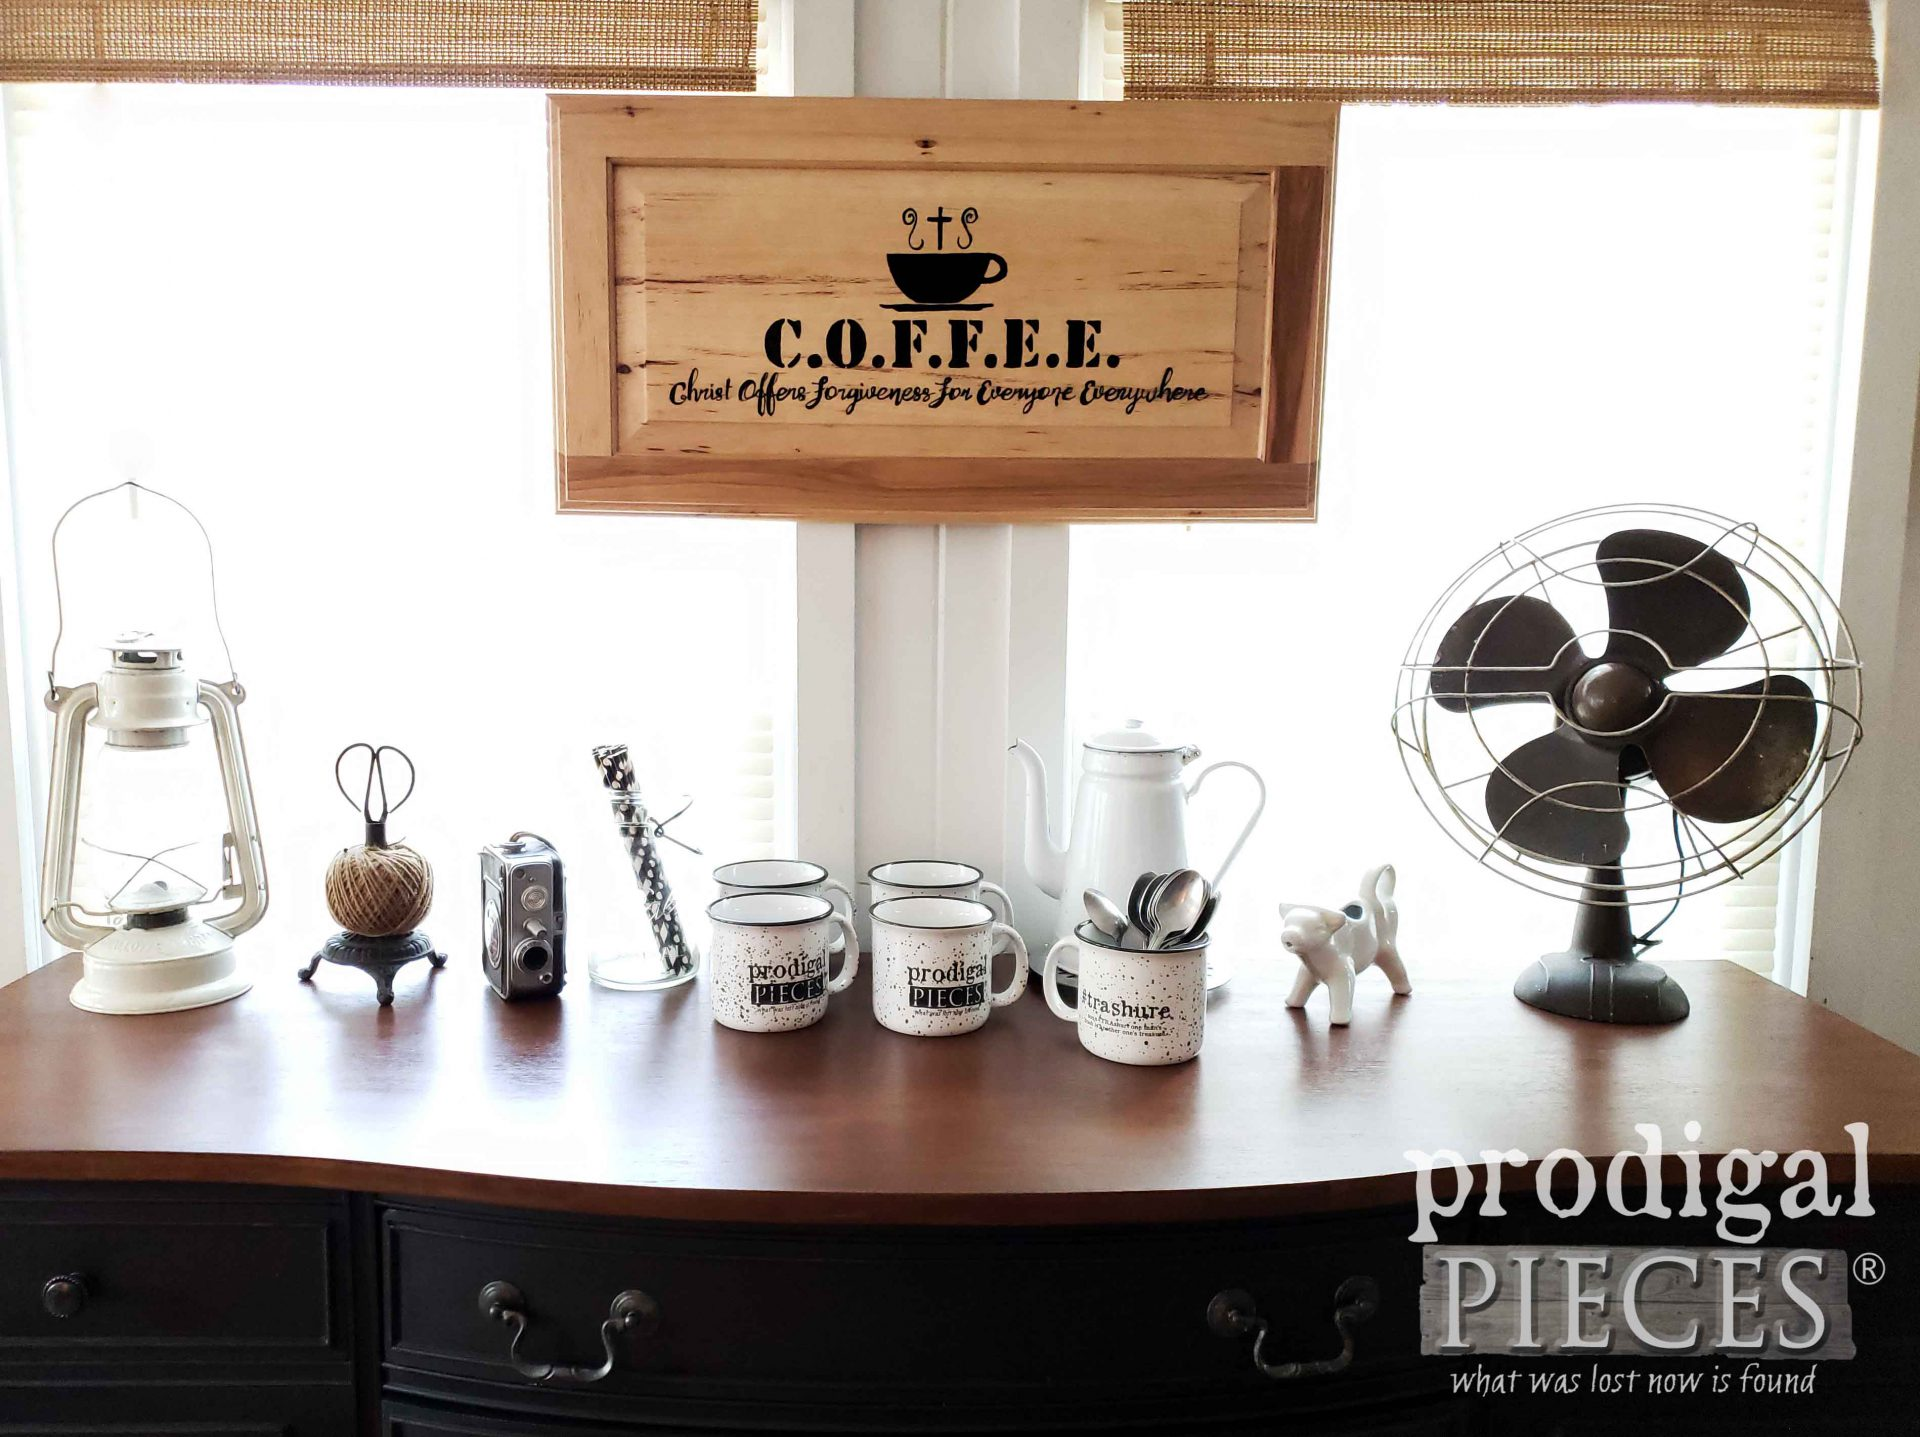 DIY Coffee Bar Created from a Vintage Buffet Makeover by Larissa of Prodigal Pieces | prodigalpieces.com #prodigalpieces #diy #home #coffee #farmhouse #homedecor